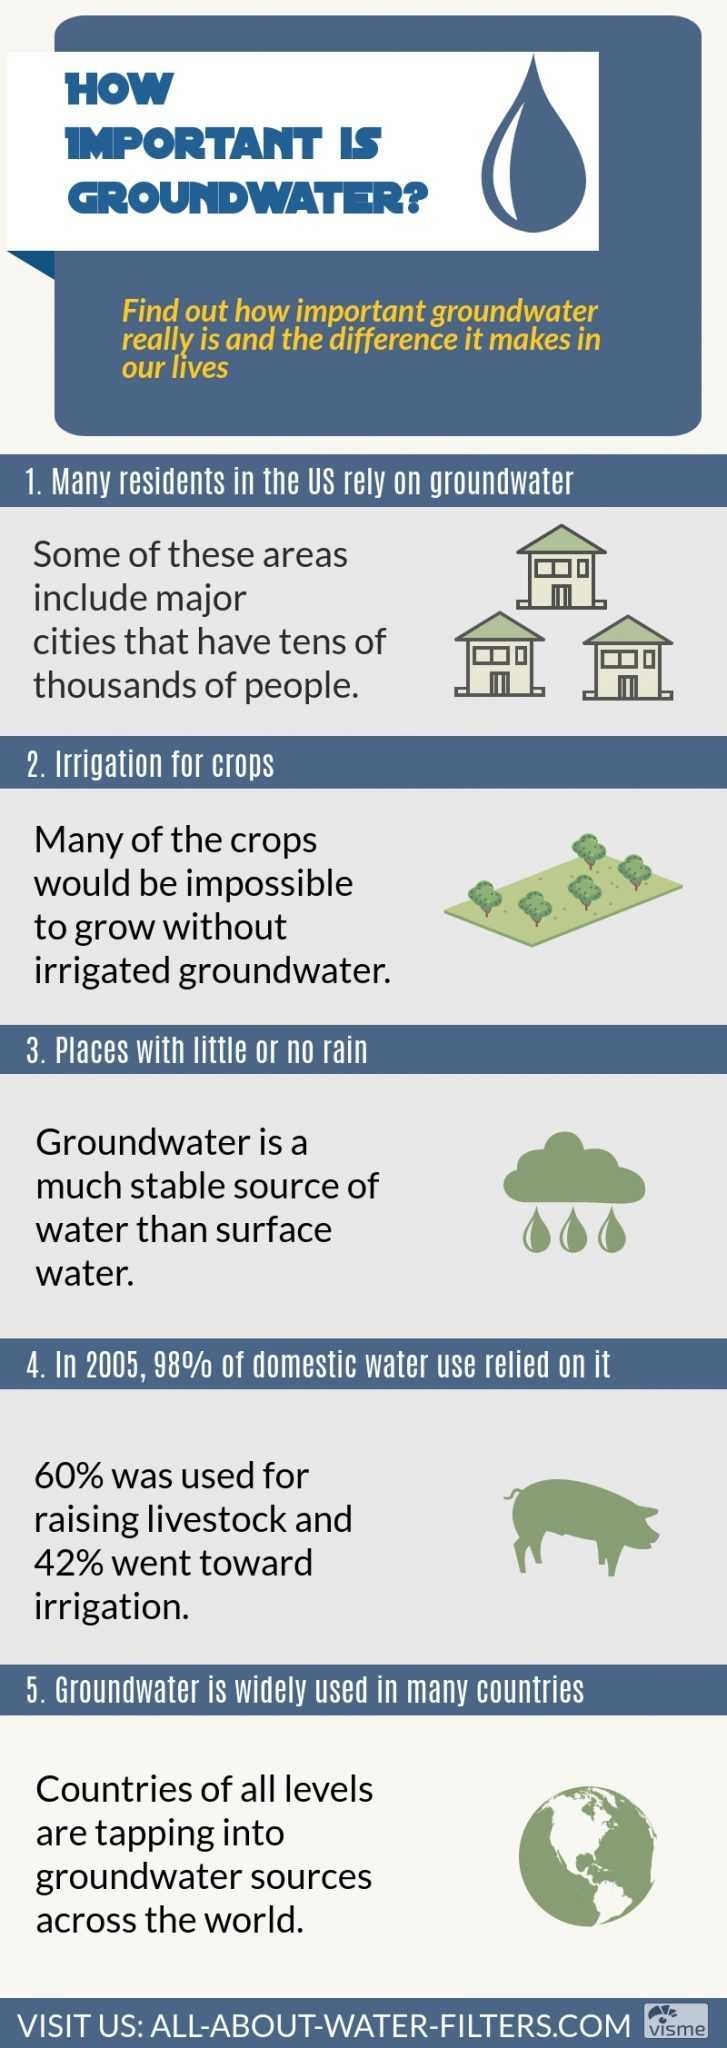 How Important is Groundwater?